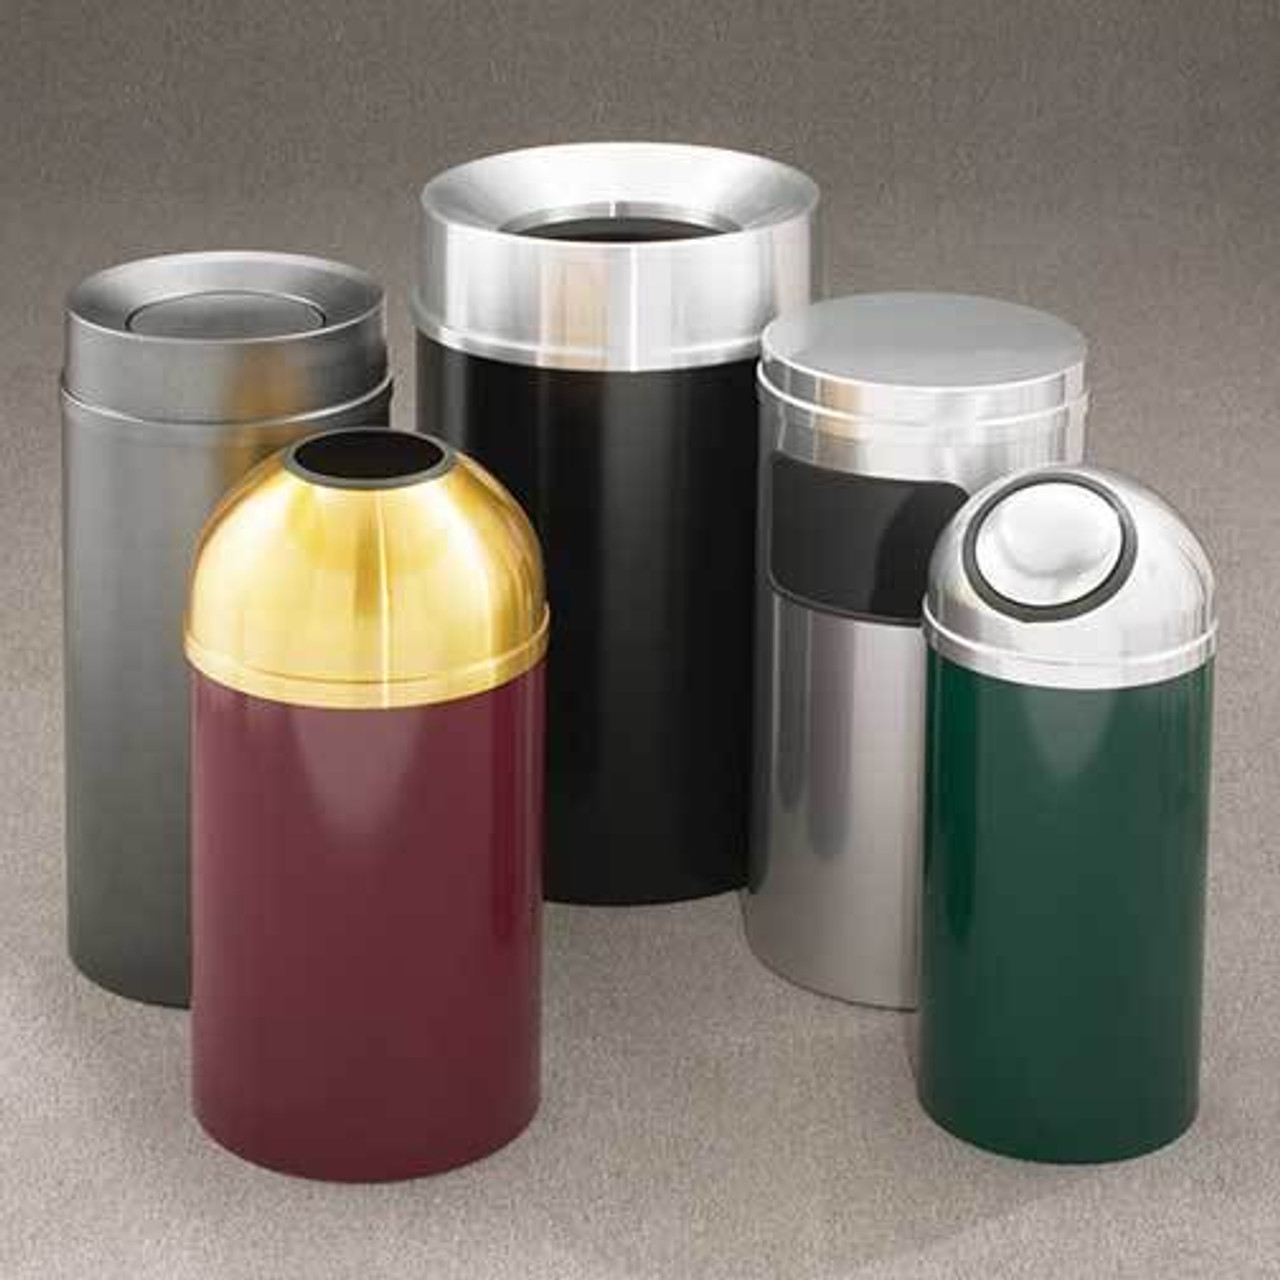 Glaro Waste Containers